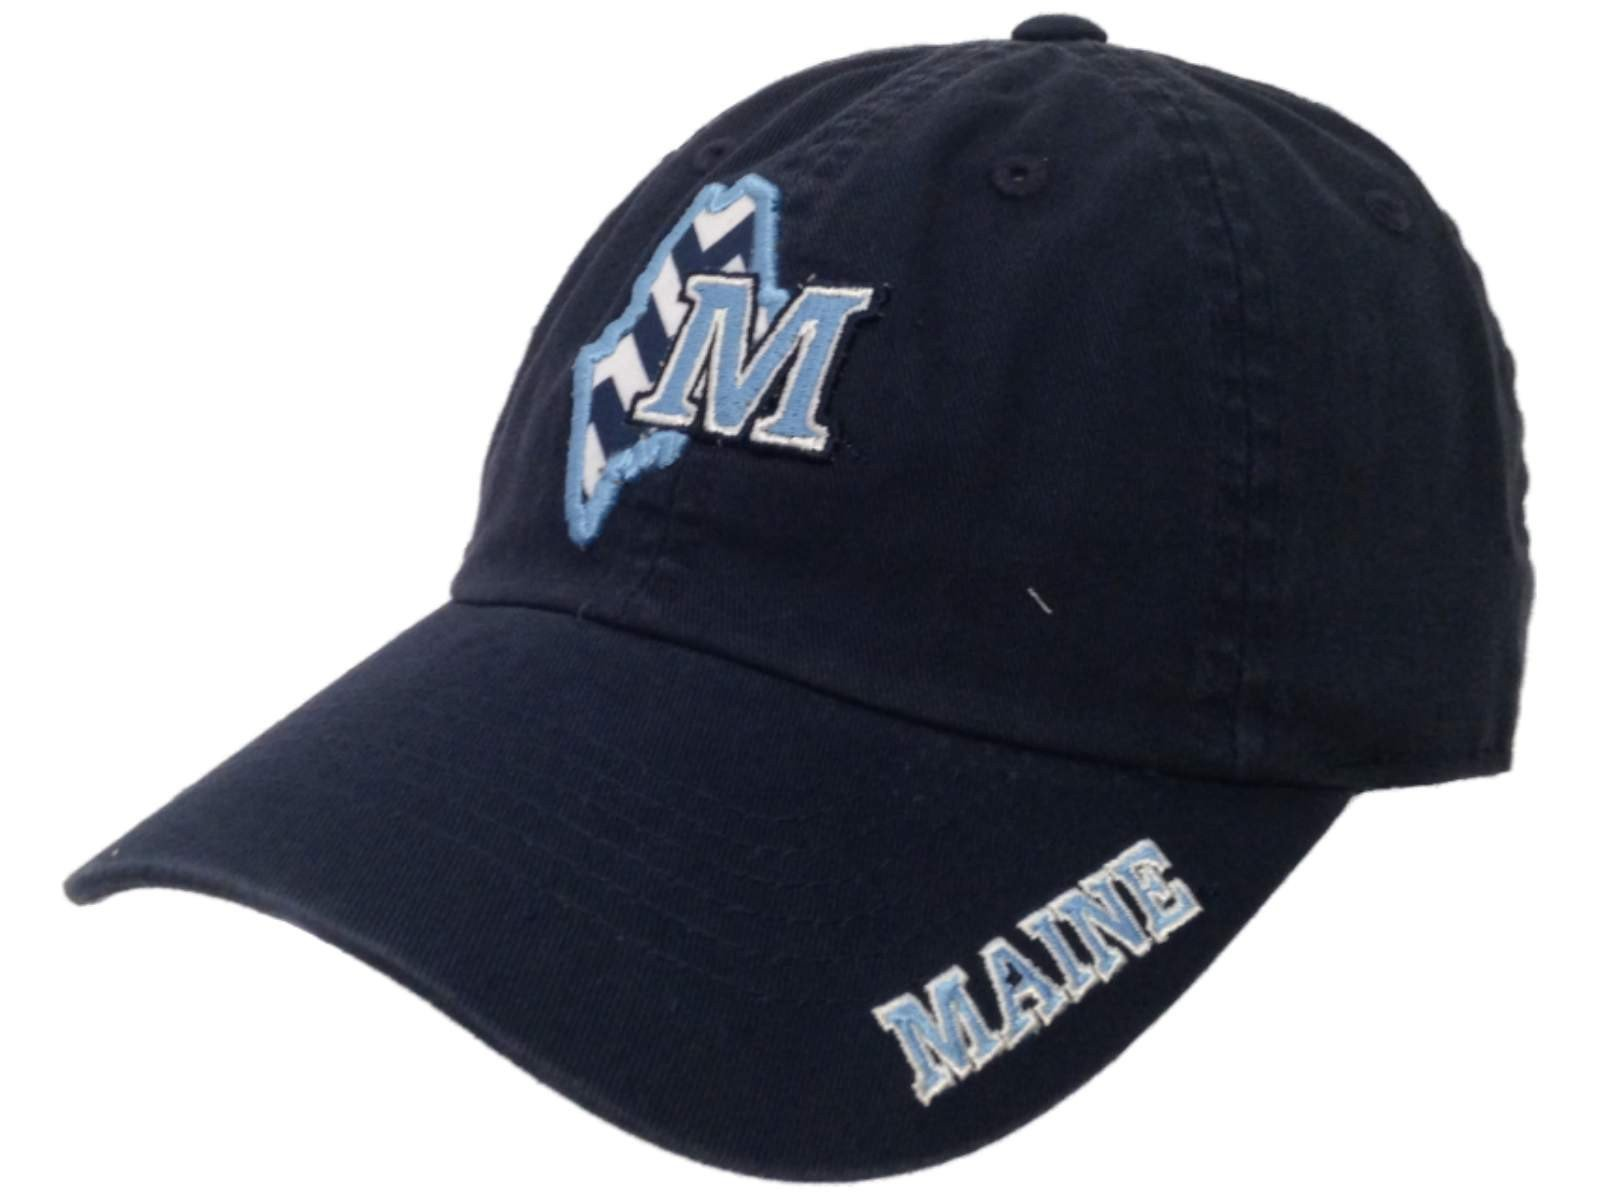 74c8fdd94e4b08 Made and Designed by Top of the World. - Size is a One Size Fits All -  Embroidered on the front and bill is a Maine Black Bears logo in a ...